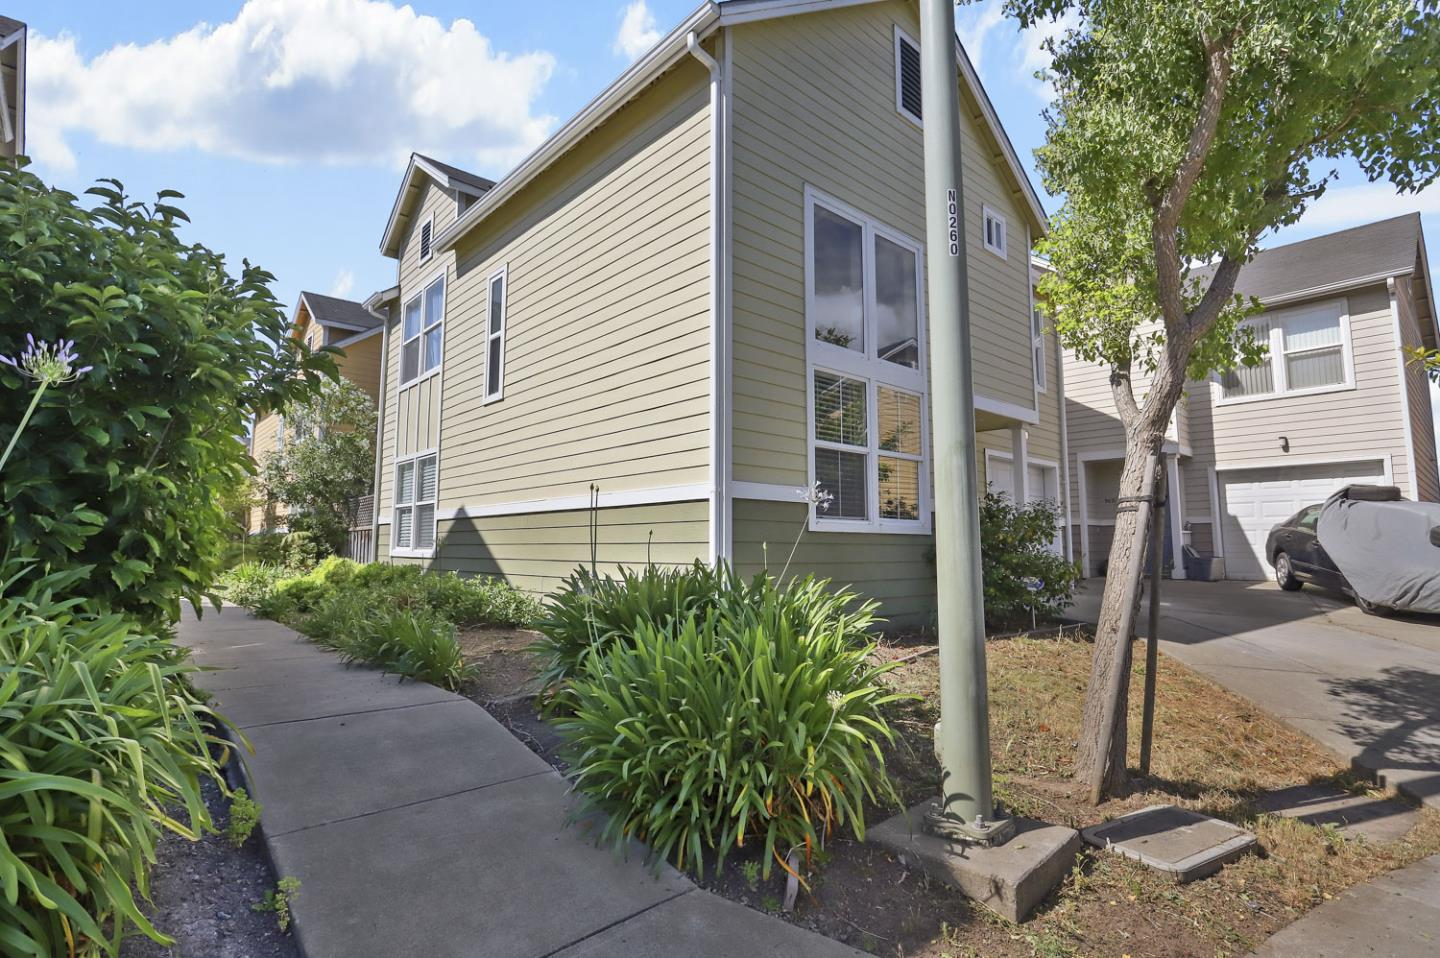 thumbnail image for 9061 Palmera Court, Oakland CA, 94603